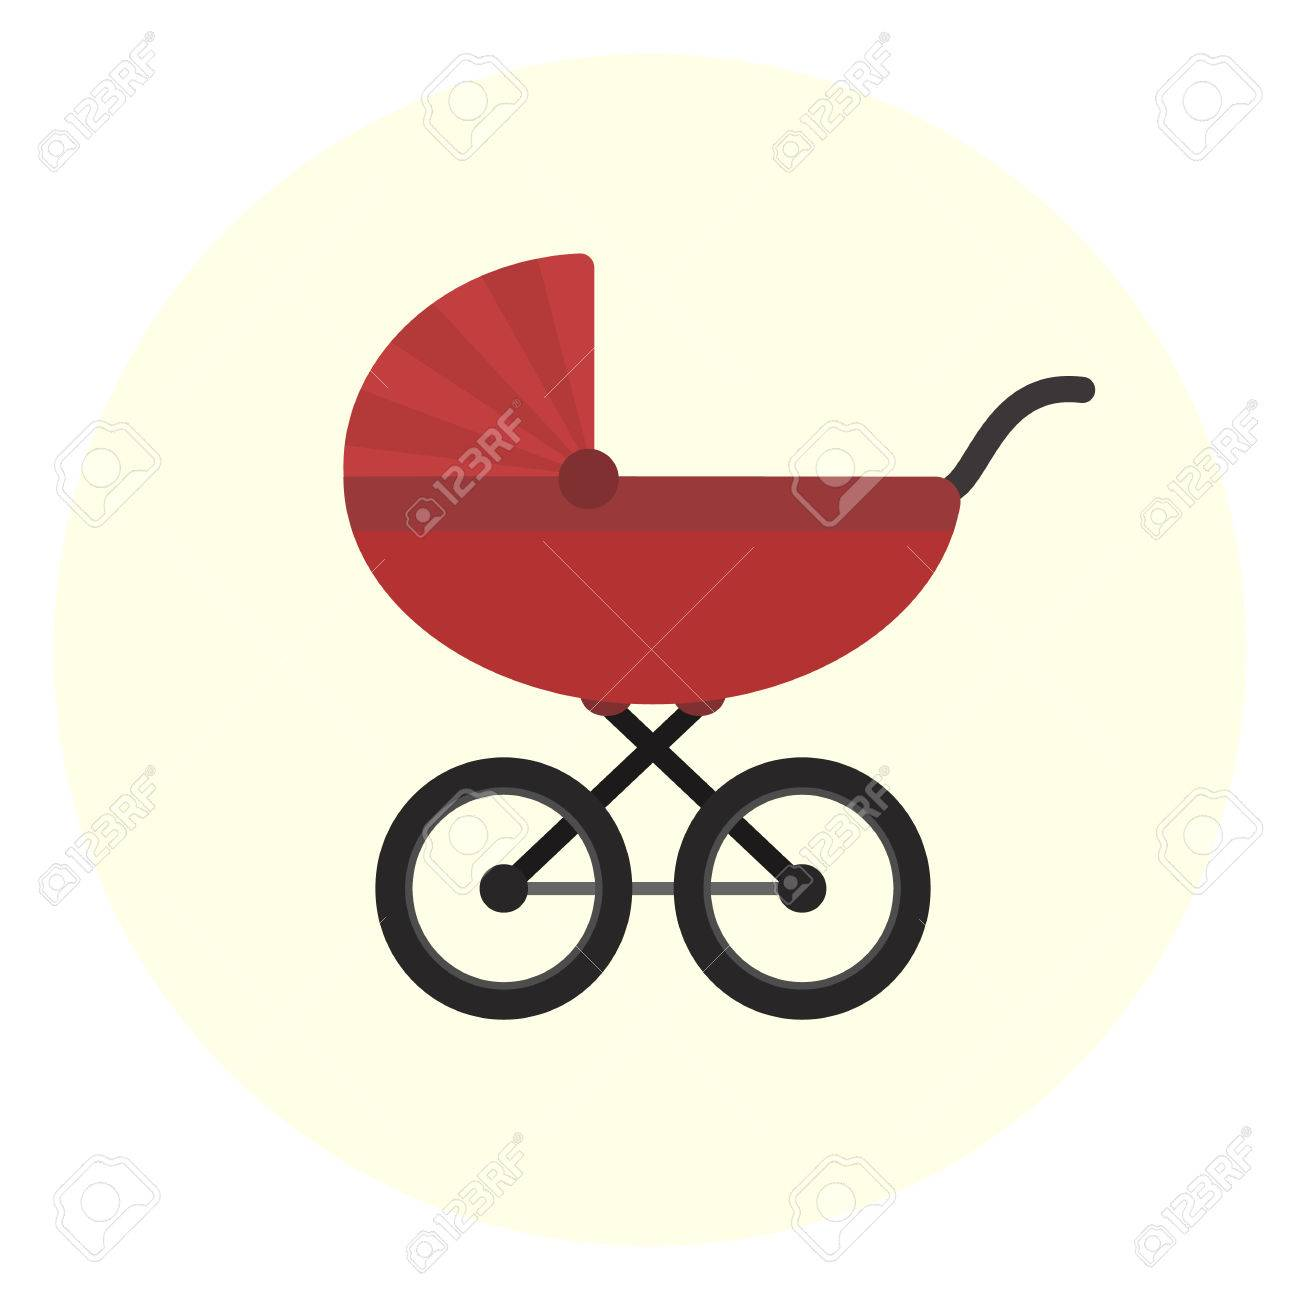 Girl and boy symbol images symbol and sign ideas flat red vector baby carriage icon unisex baby transport cute boy pram symbol flat red vector buycottarizona Gallery